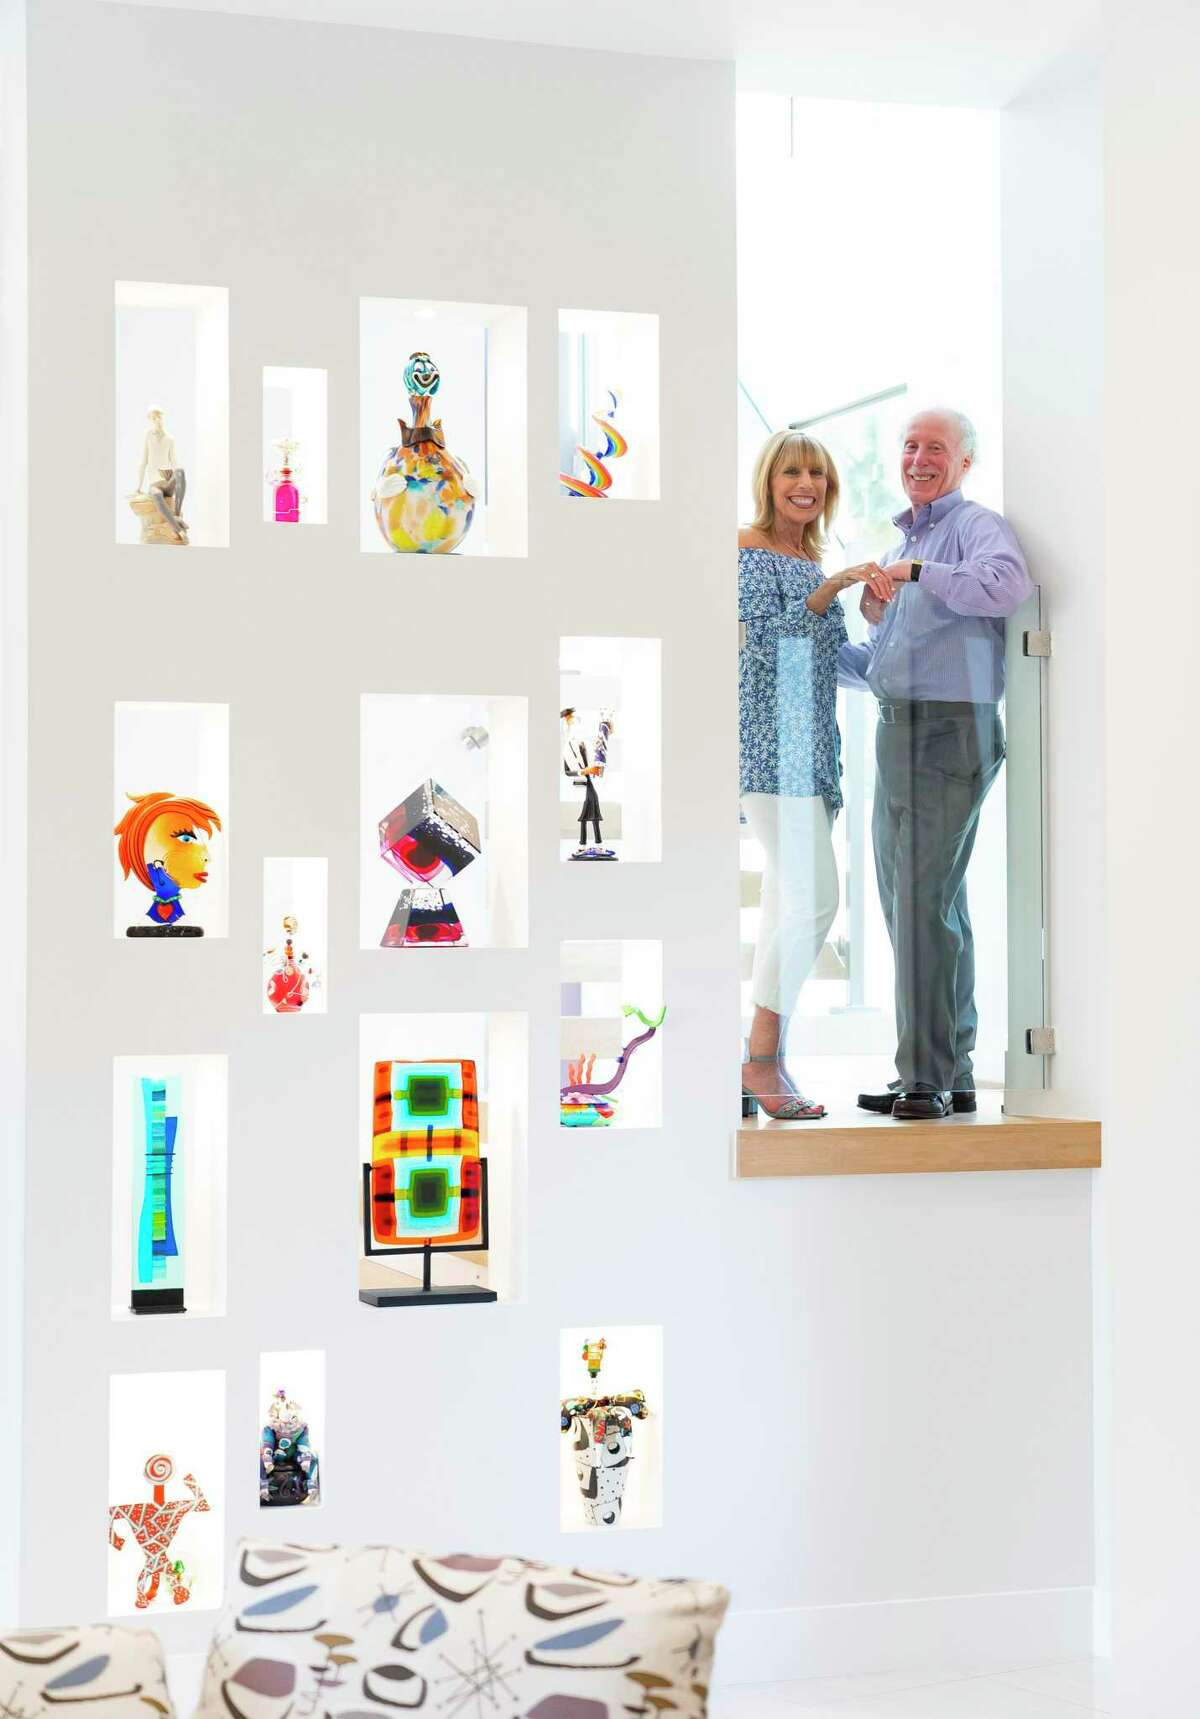 Shelly and Steve Strauss pose for a photo on the landing of their staircase, adjacent to a wall with art niches displaying some of their art glass collection.